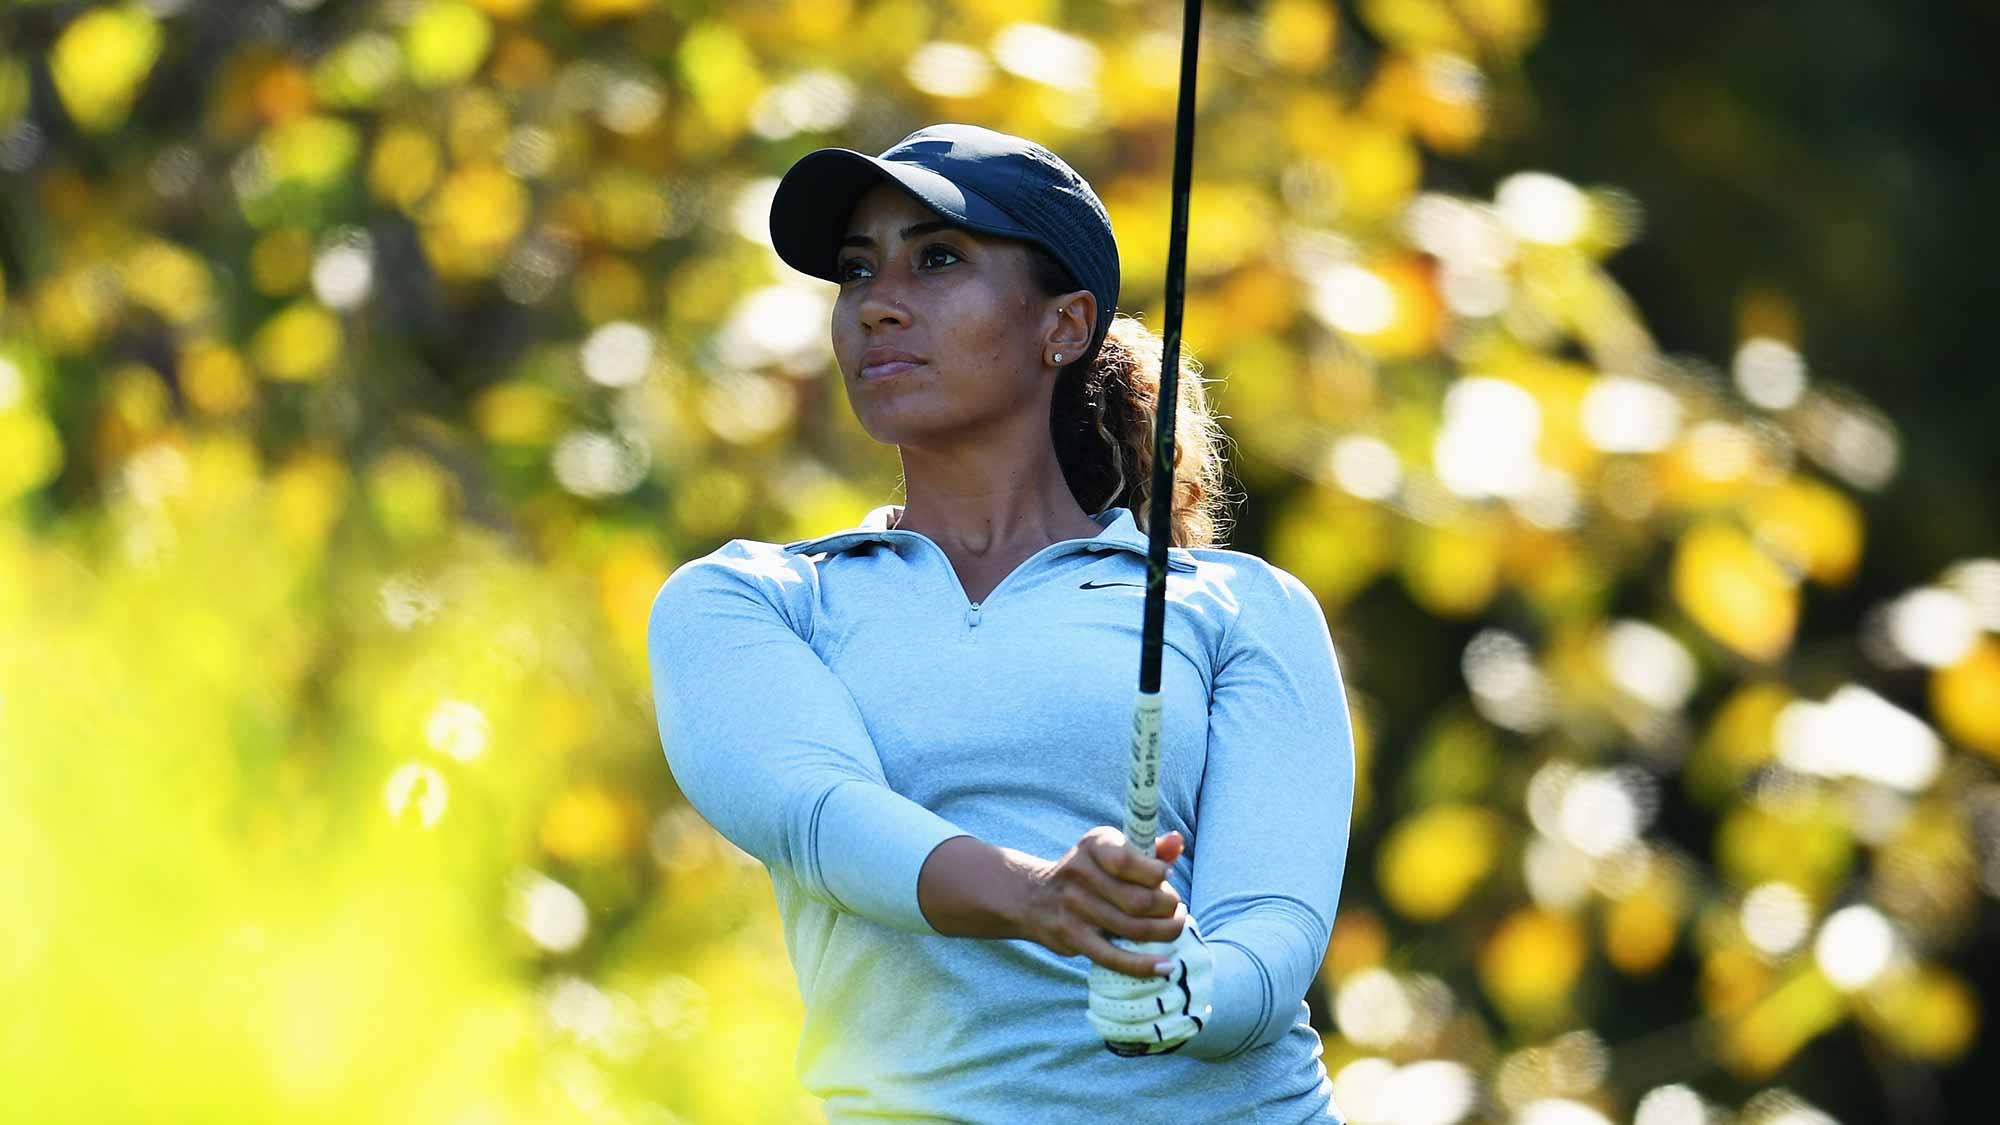 Cheyenne Woods of USA plays a shot during practice prior to the start of the Evian Championship